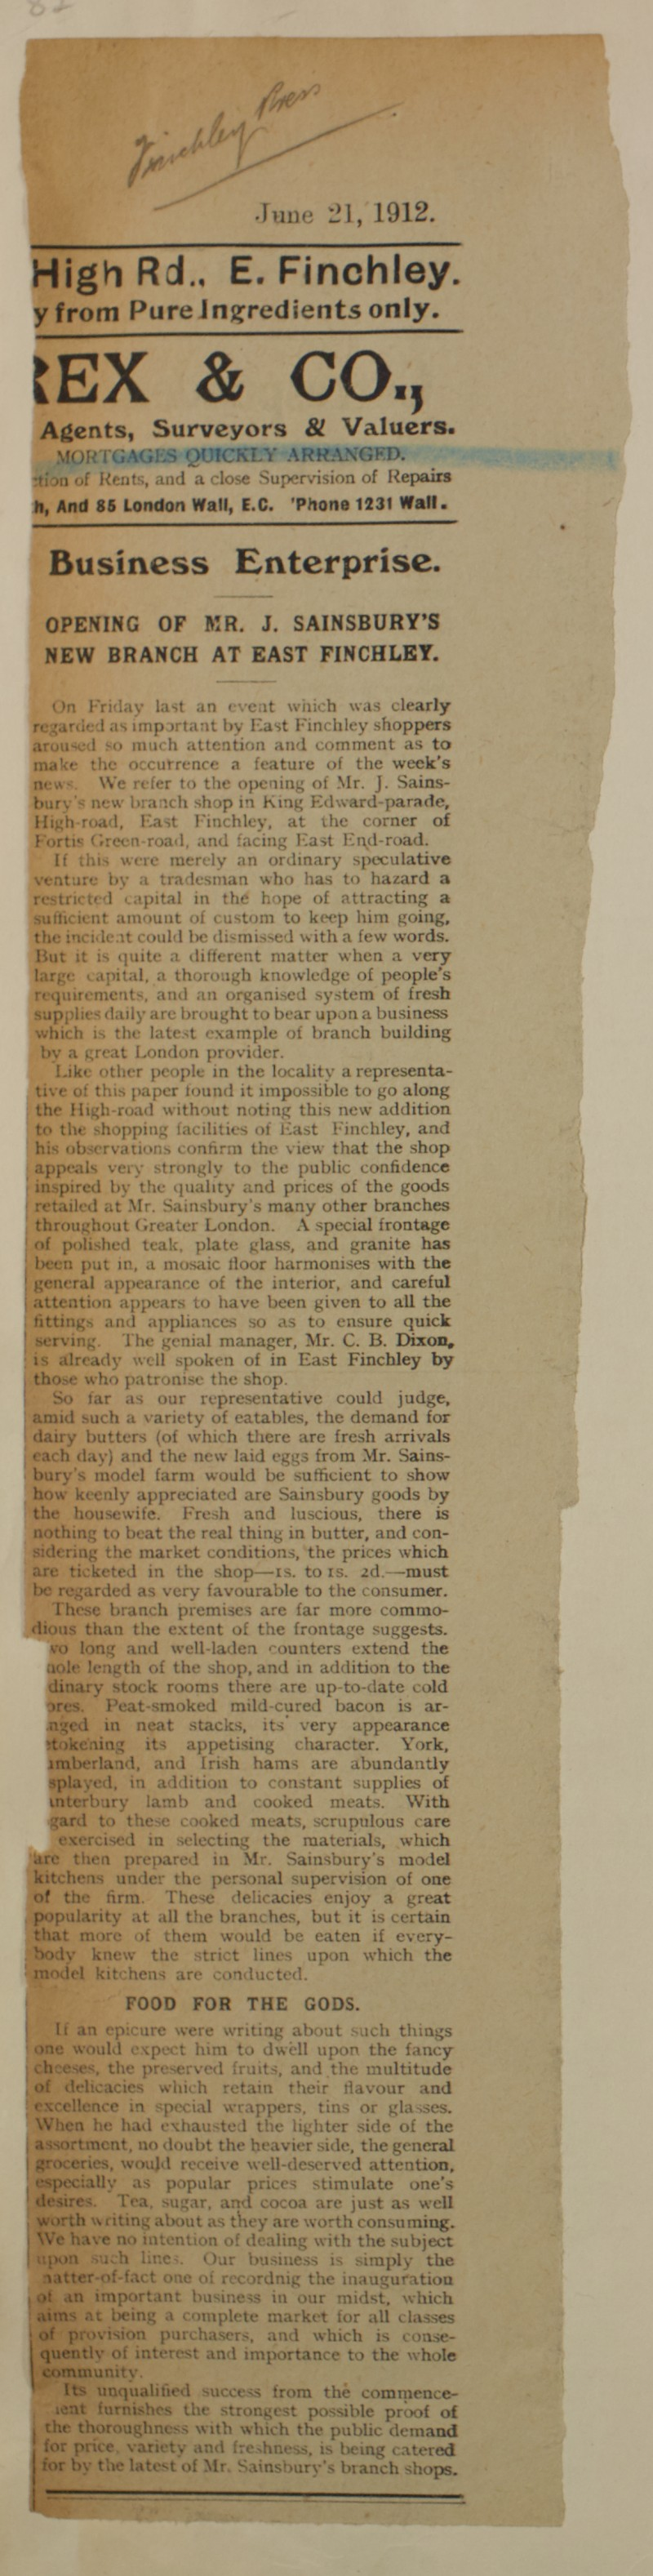 SA/MARK/ADV/1/1/1/1/1/6/1/136 - Newspaper article for 'Opening of Mr J. Sainsbury's new branch at East Finchley', 1912